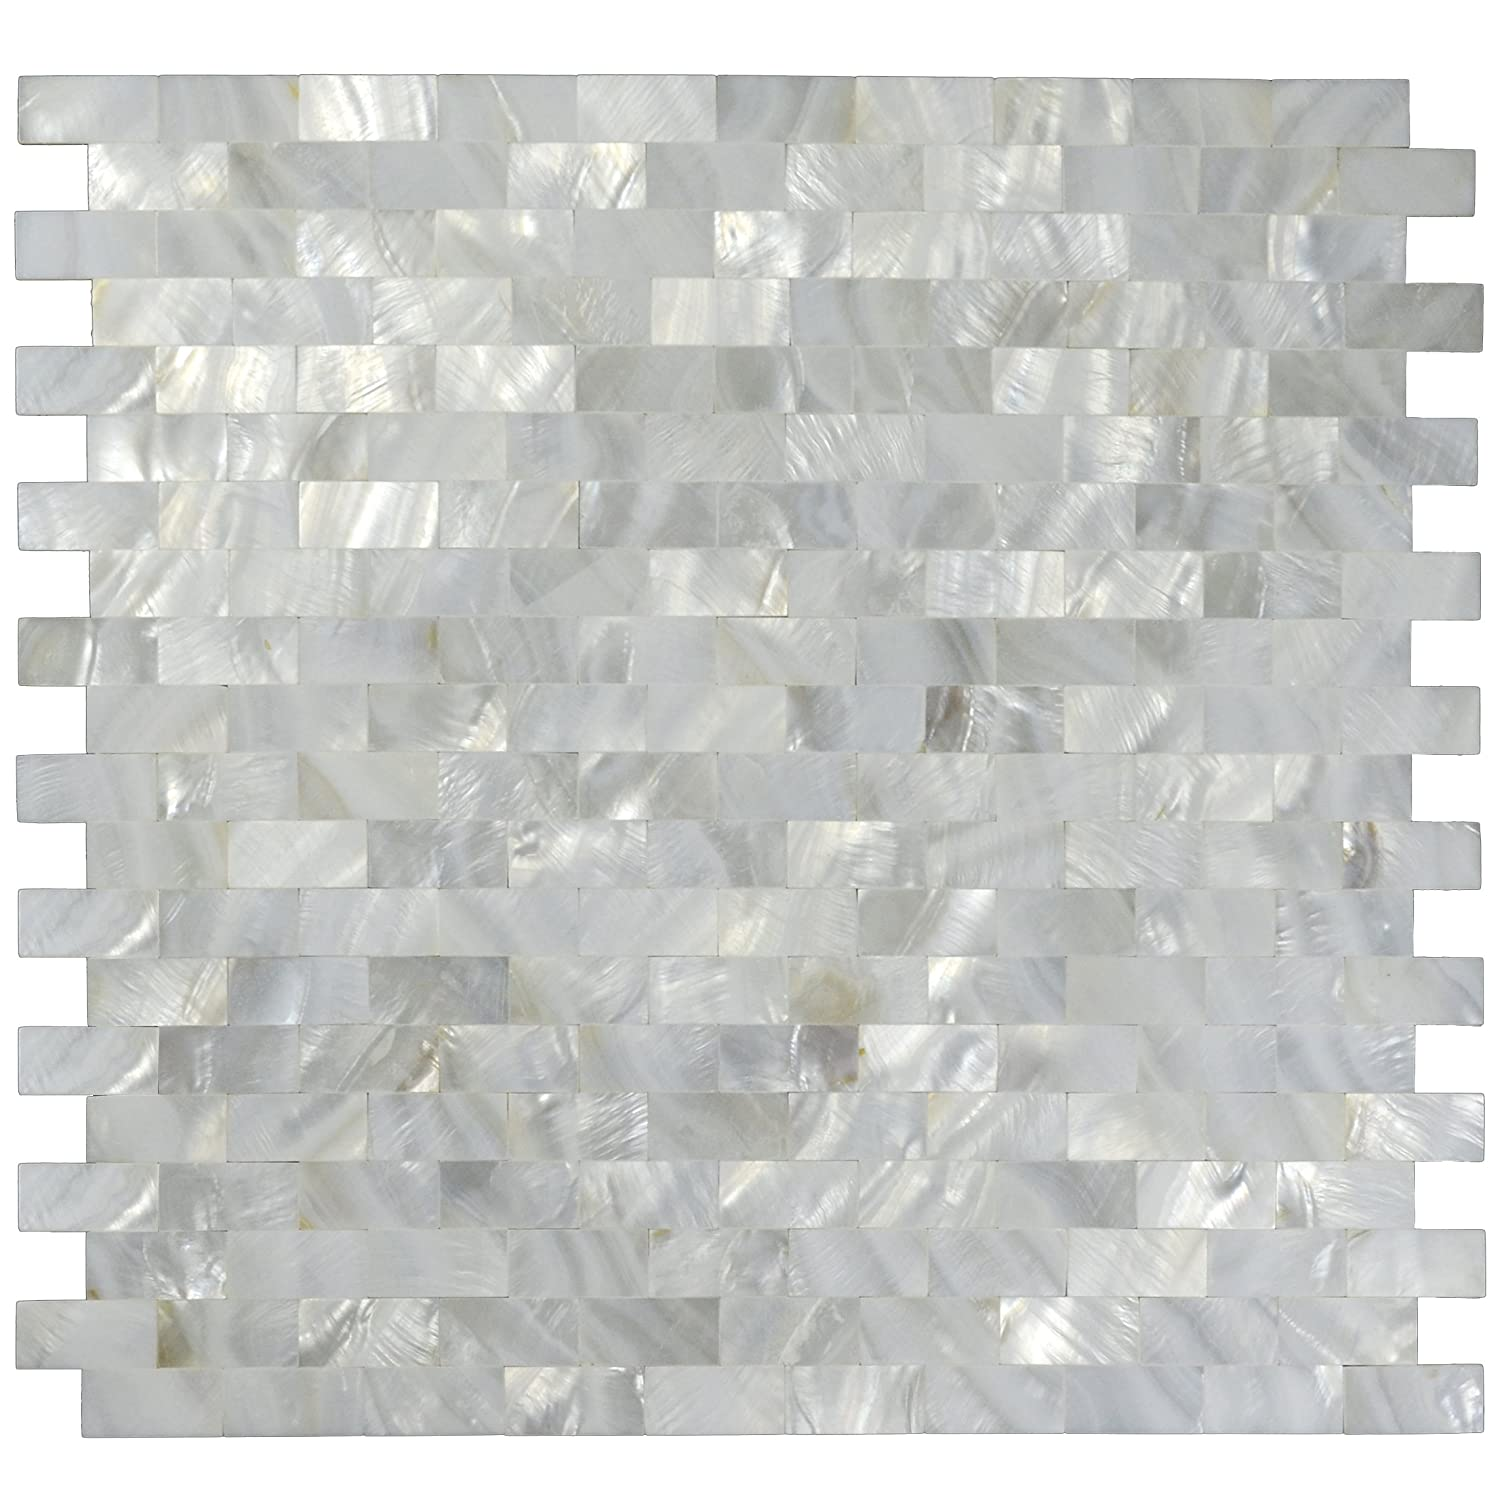 1 sq ft white mother of pearl tile shell mosaic tile kitchen backsplash bathroom wall tile amazoncom